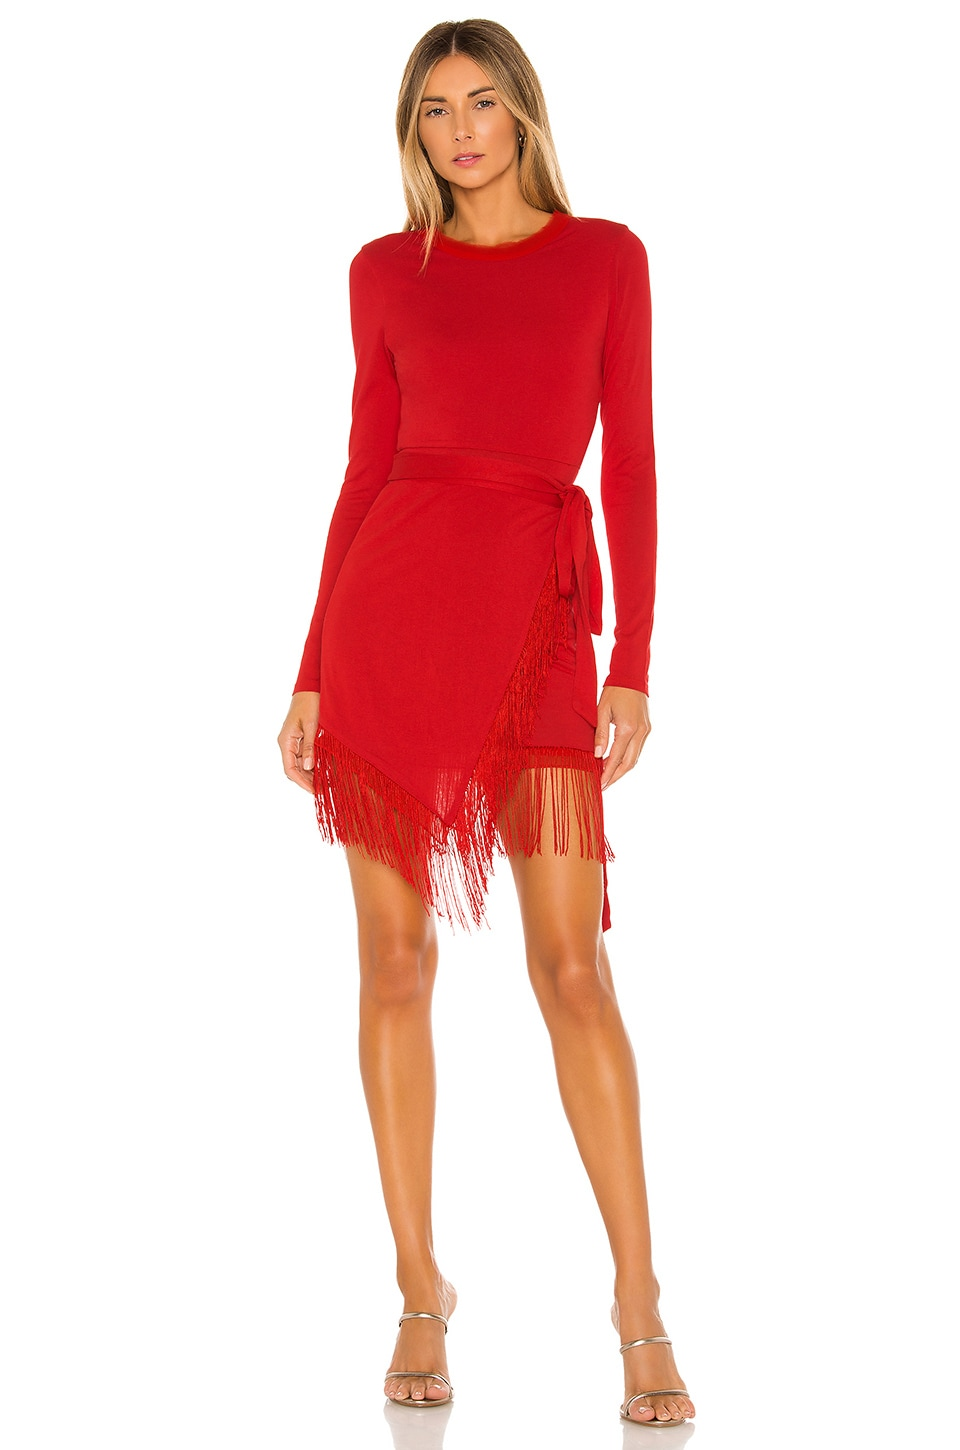 House of Harlow 1960 x REVOLVE Anisha Fringe Dress in Red